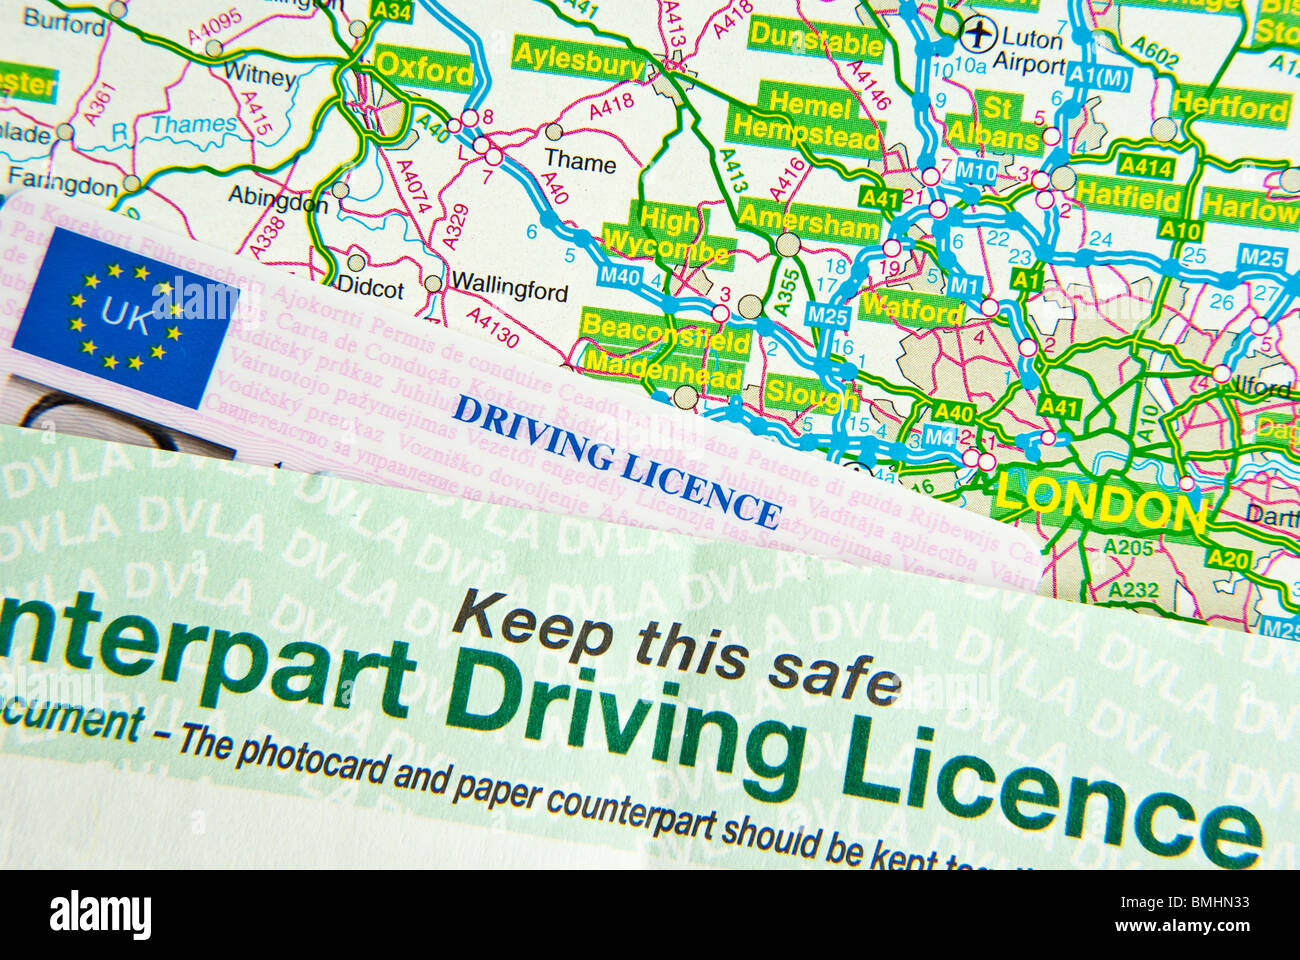 Map Around London.Uk Driving Licence On Uk Road Map Around London Stock Photo